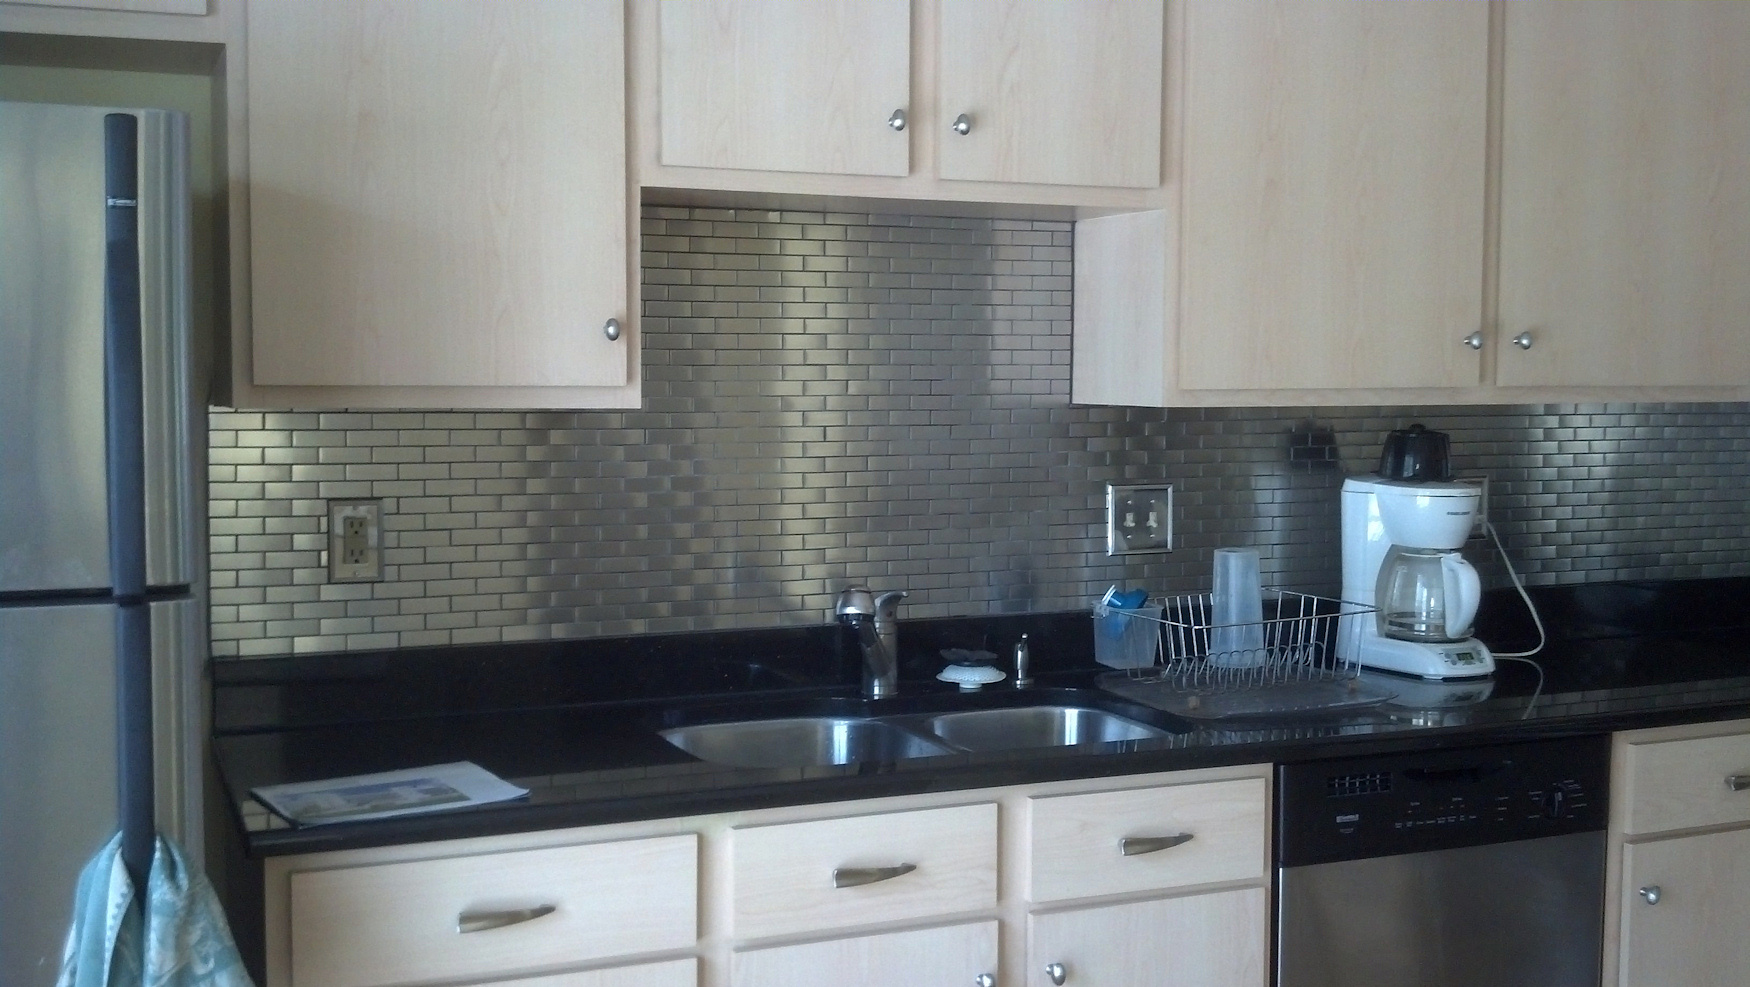 Modern Ikea Stainless Steel Backsplash